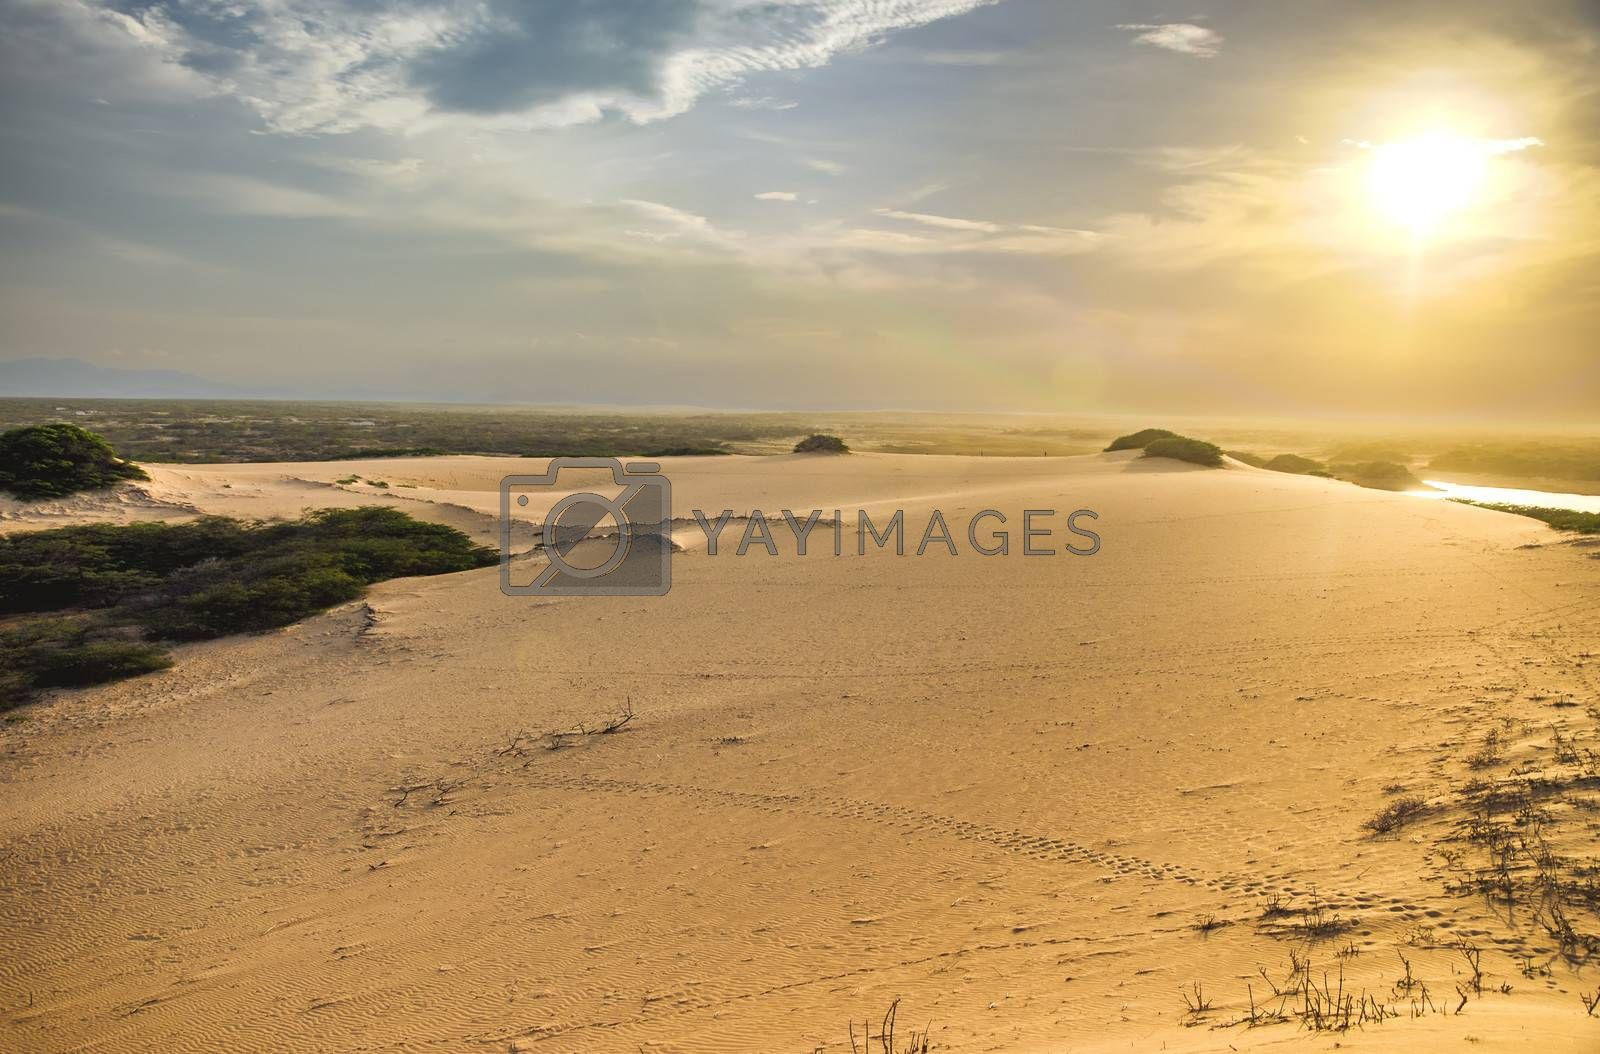 Looking into the sun on a sand dune in La Guajira, Colombia